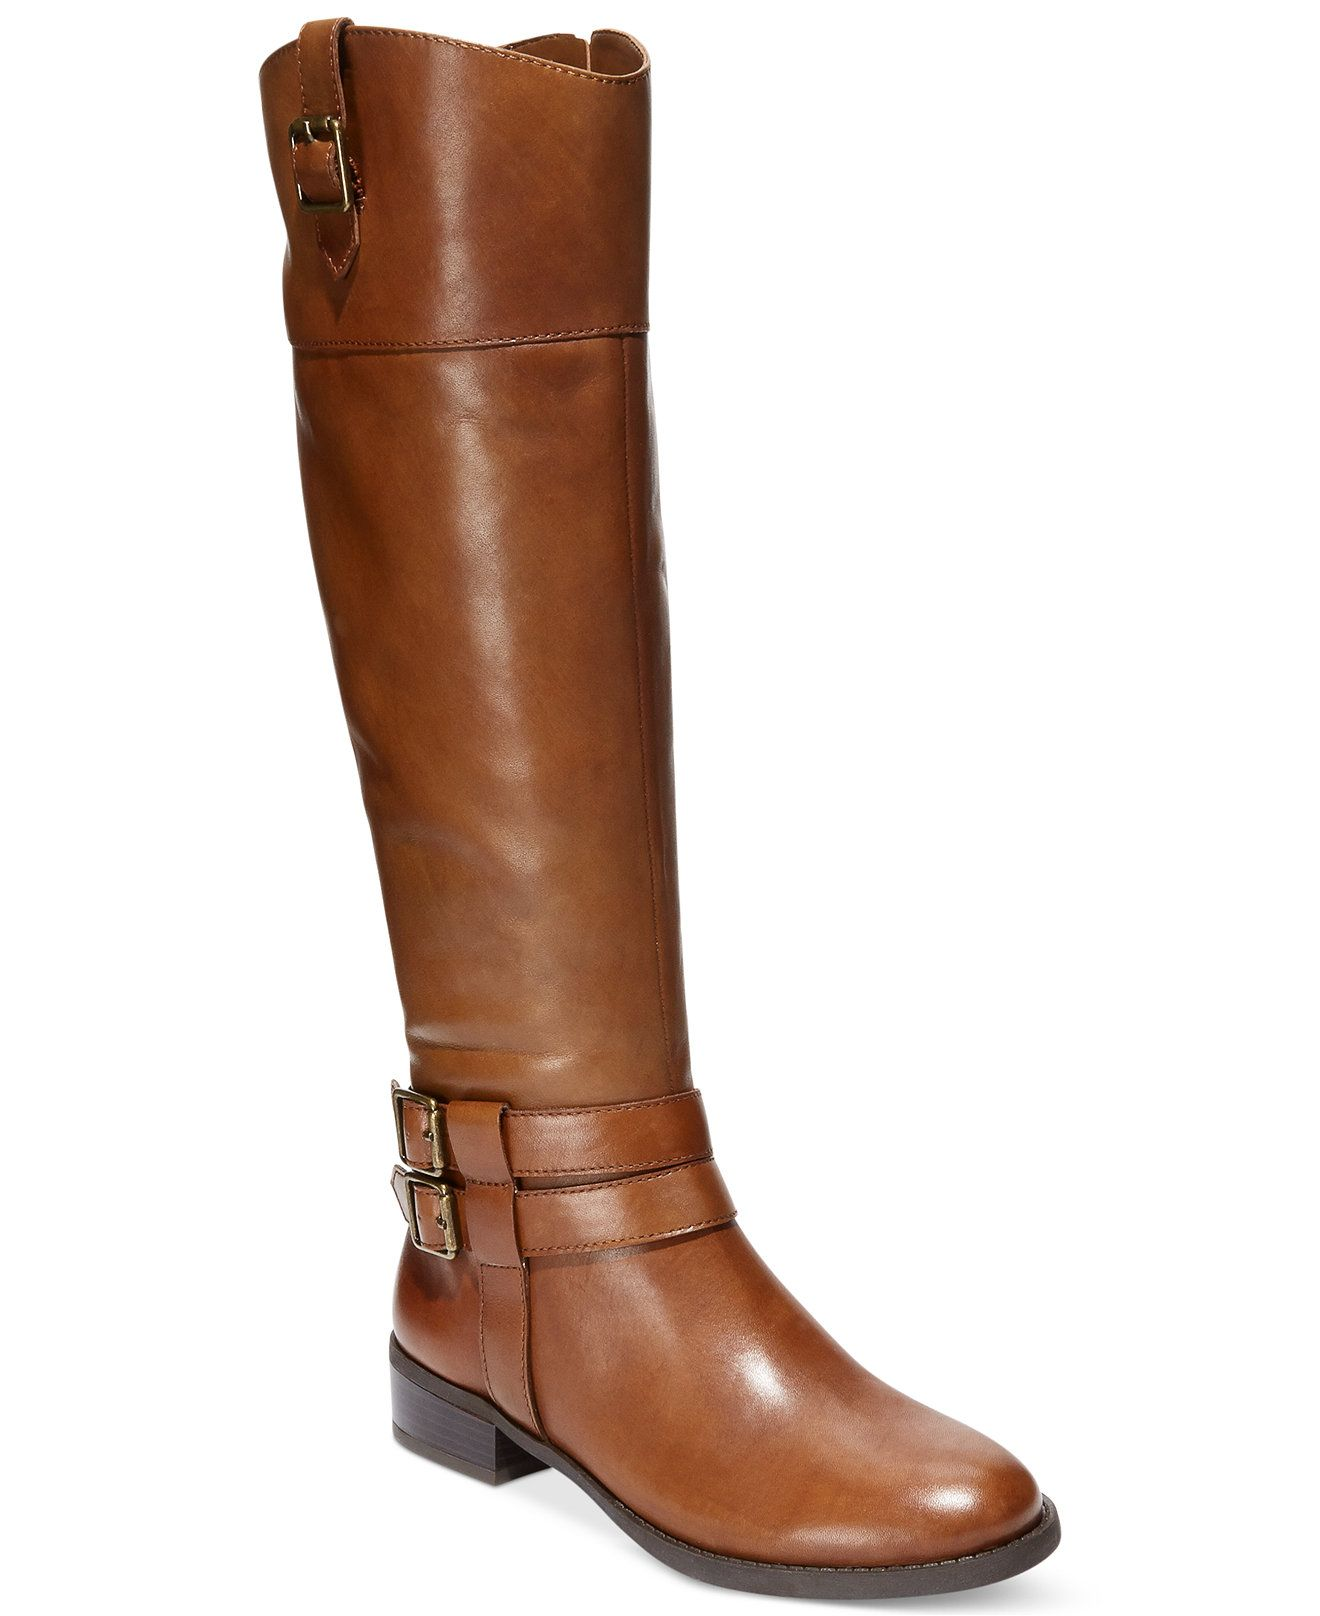 INC International Concepts Fahnee Leather Wide Calf Riding Boots - Boots -  Shoes - Macy's